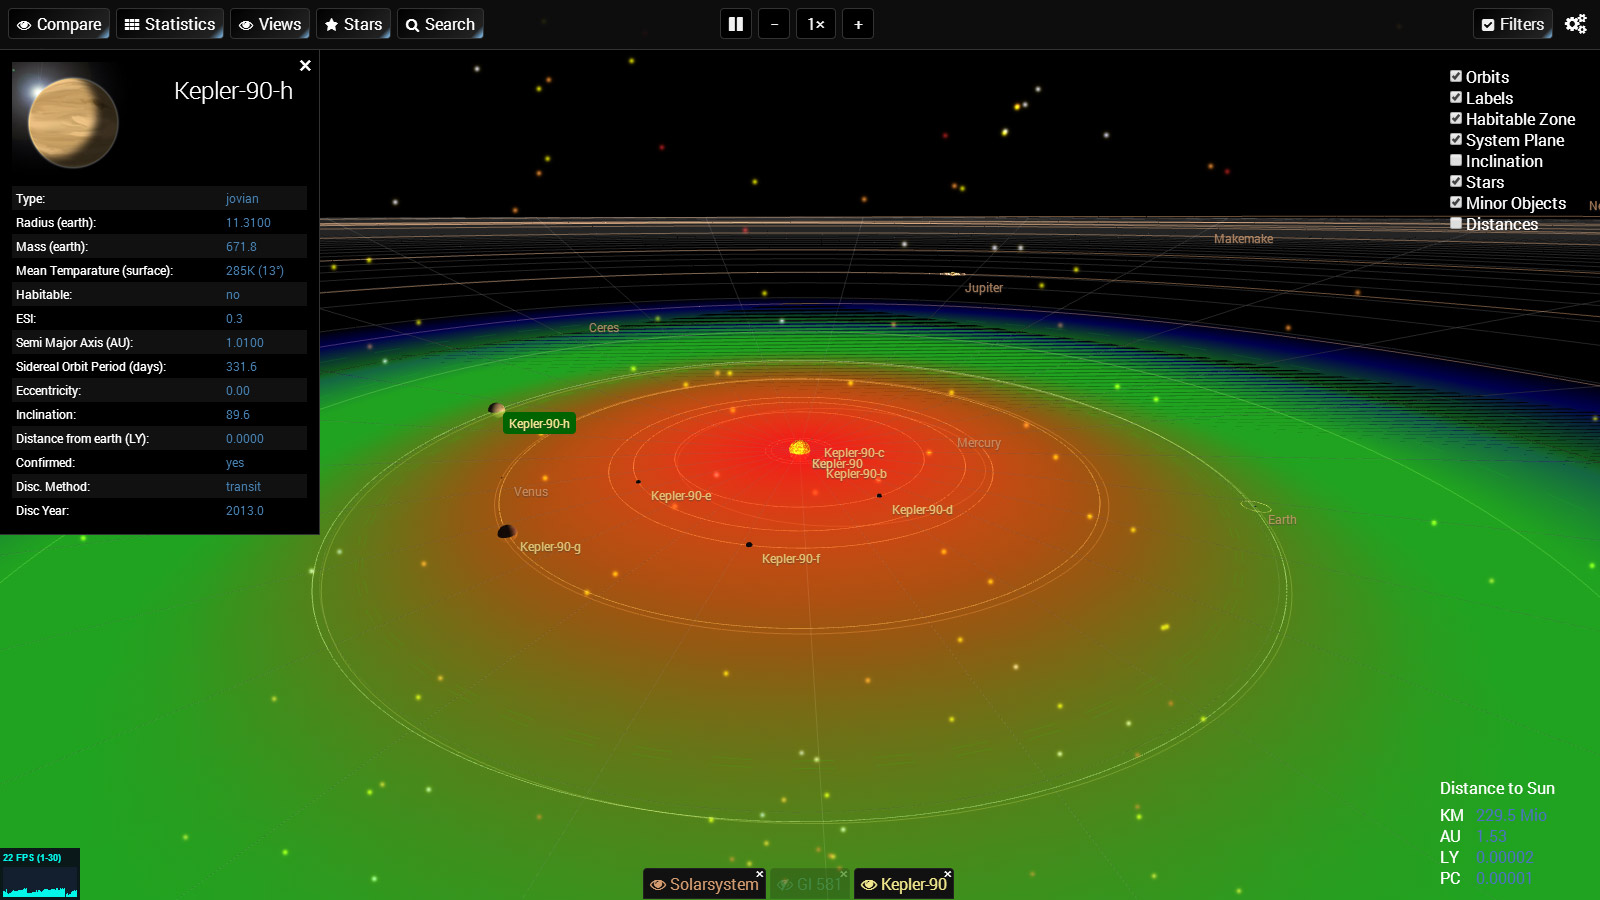 ExoPlanetSystems - A Visualization of Exoplanet Systems